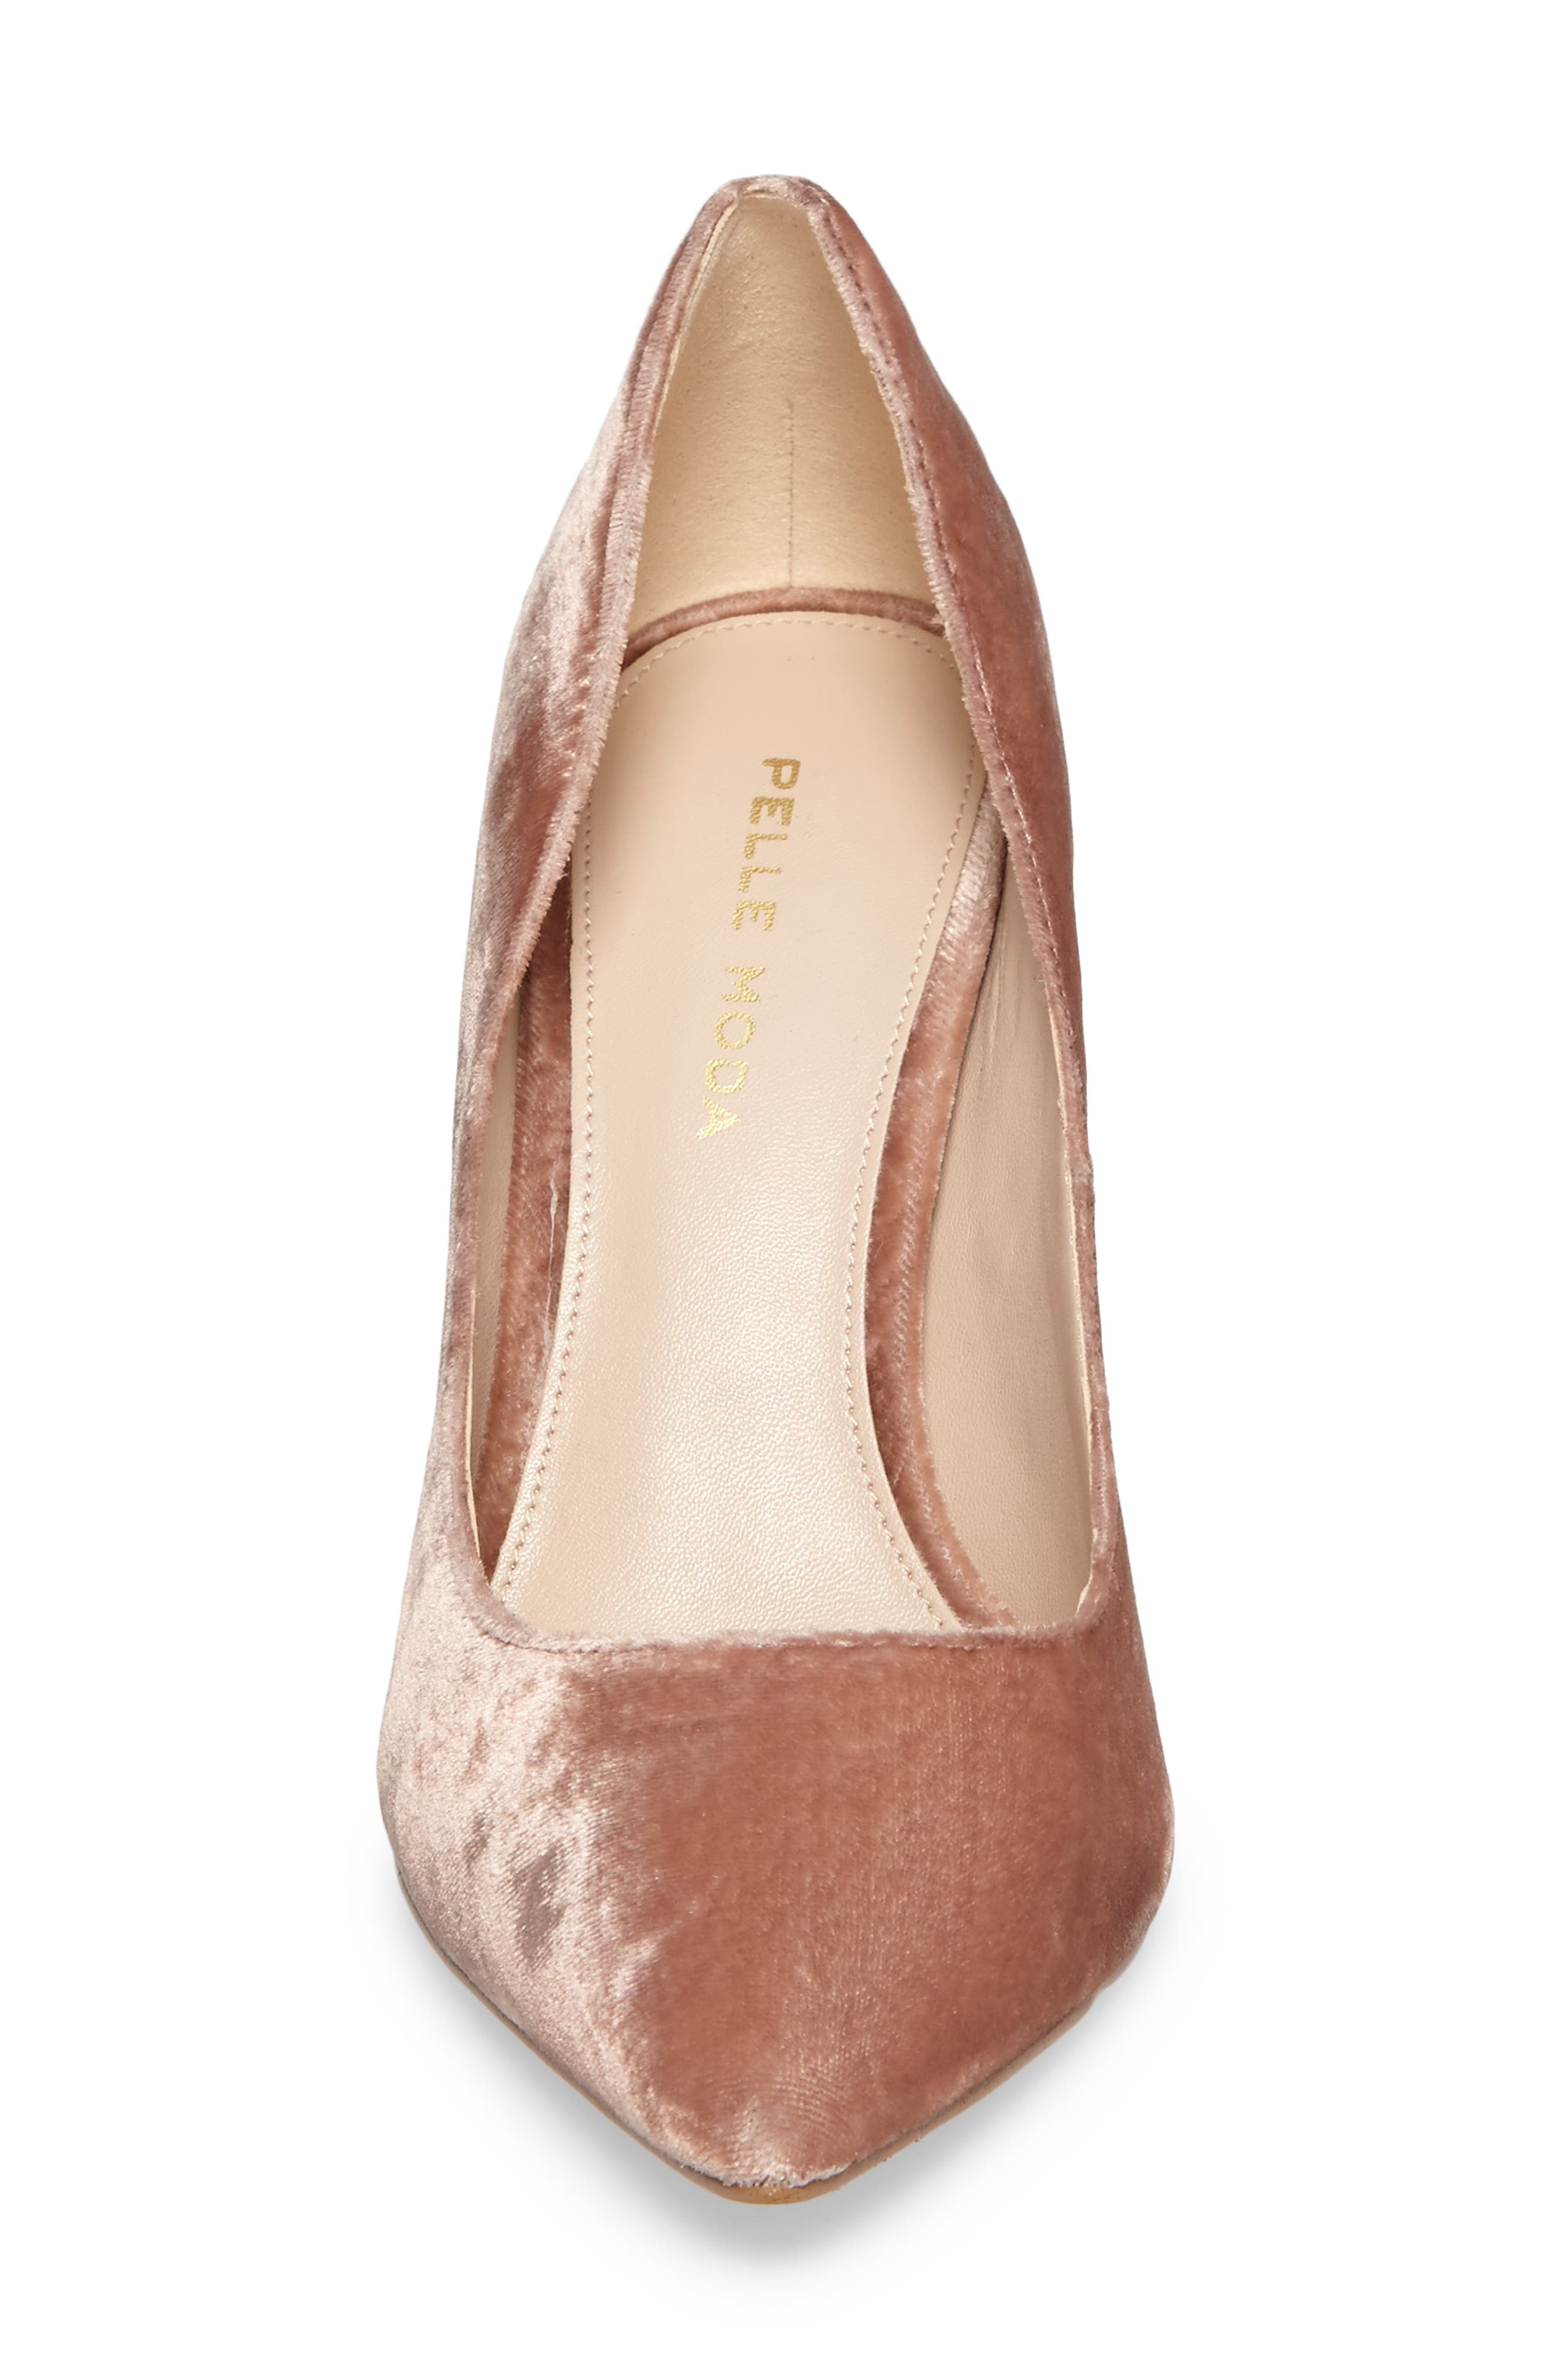 Vally2 Pointy Toe Pump,                             Alternate thumbnail 4, color,                             Blush Fabric